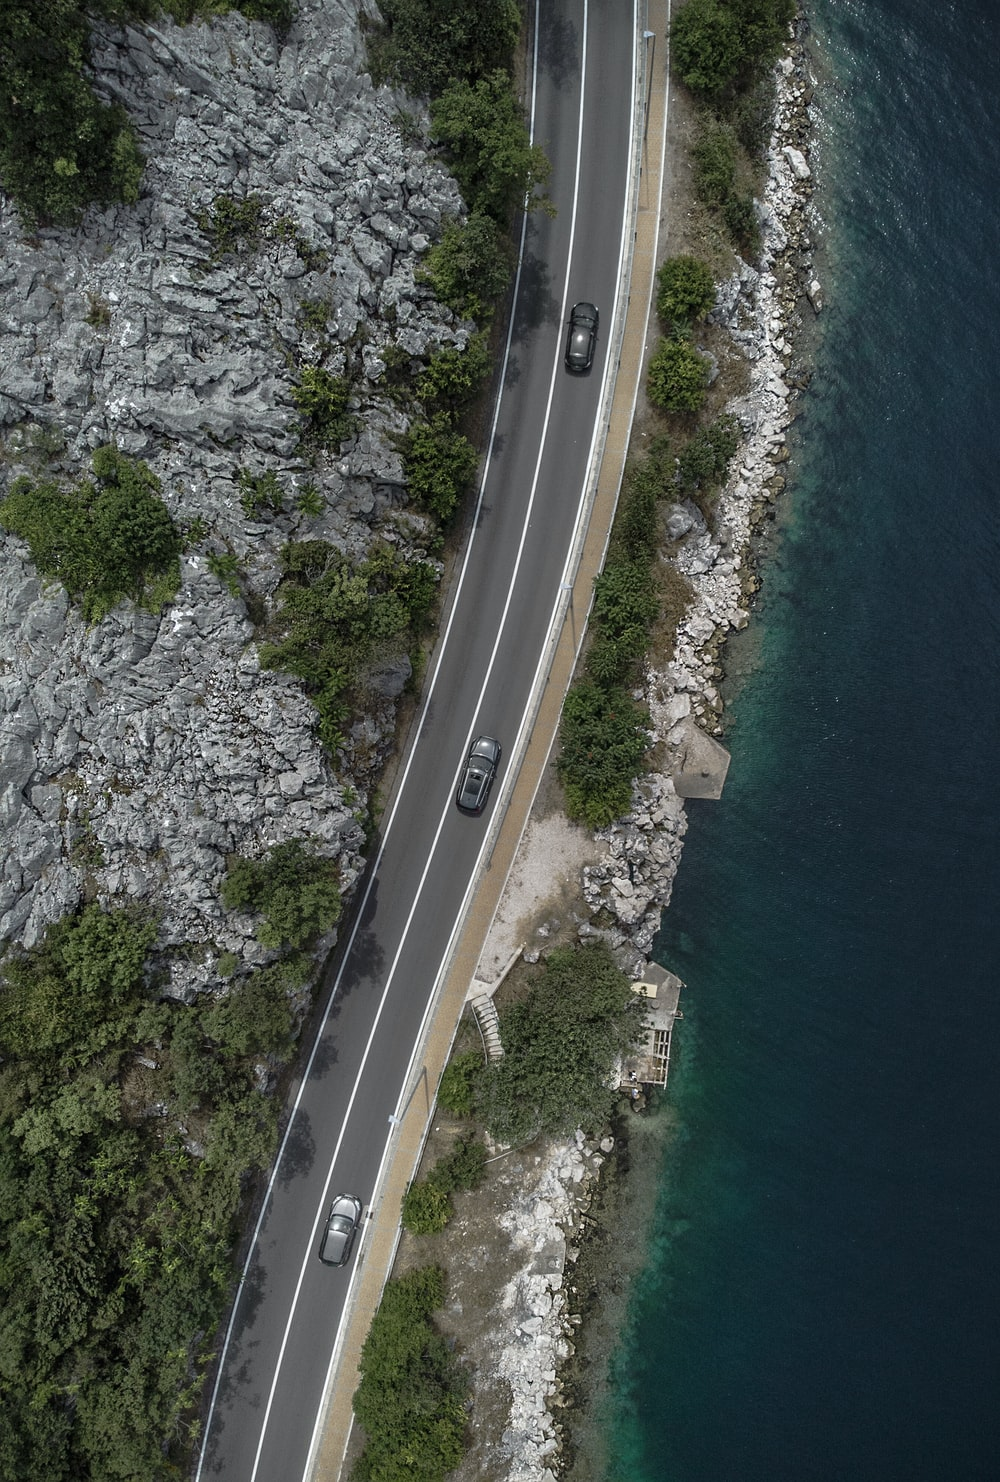 aerial view of a road near the body of water